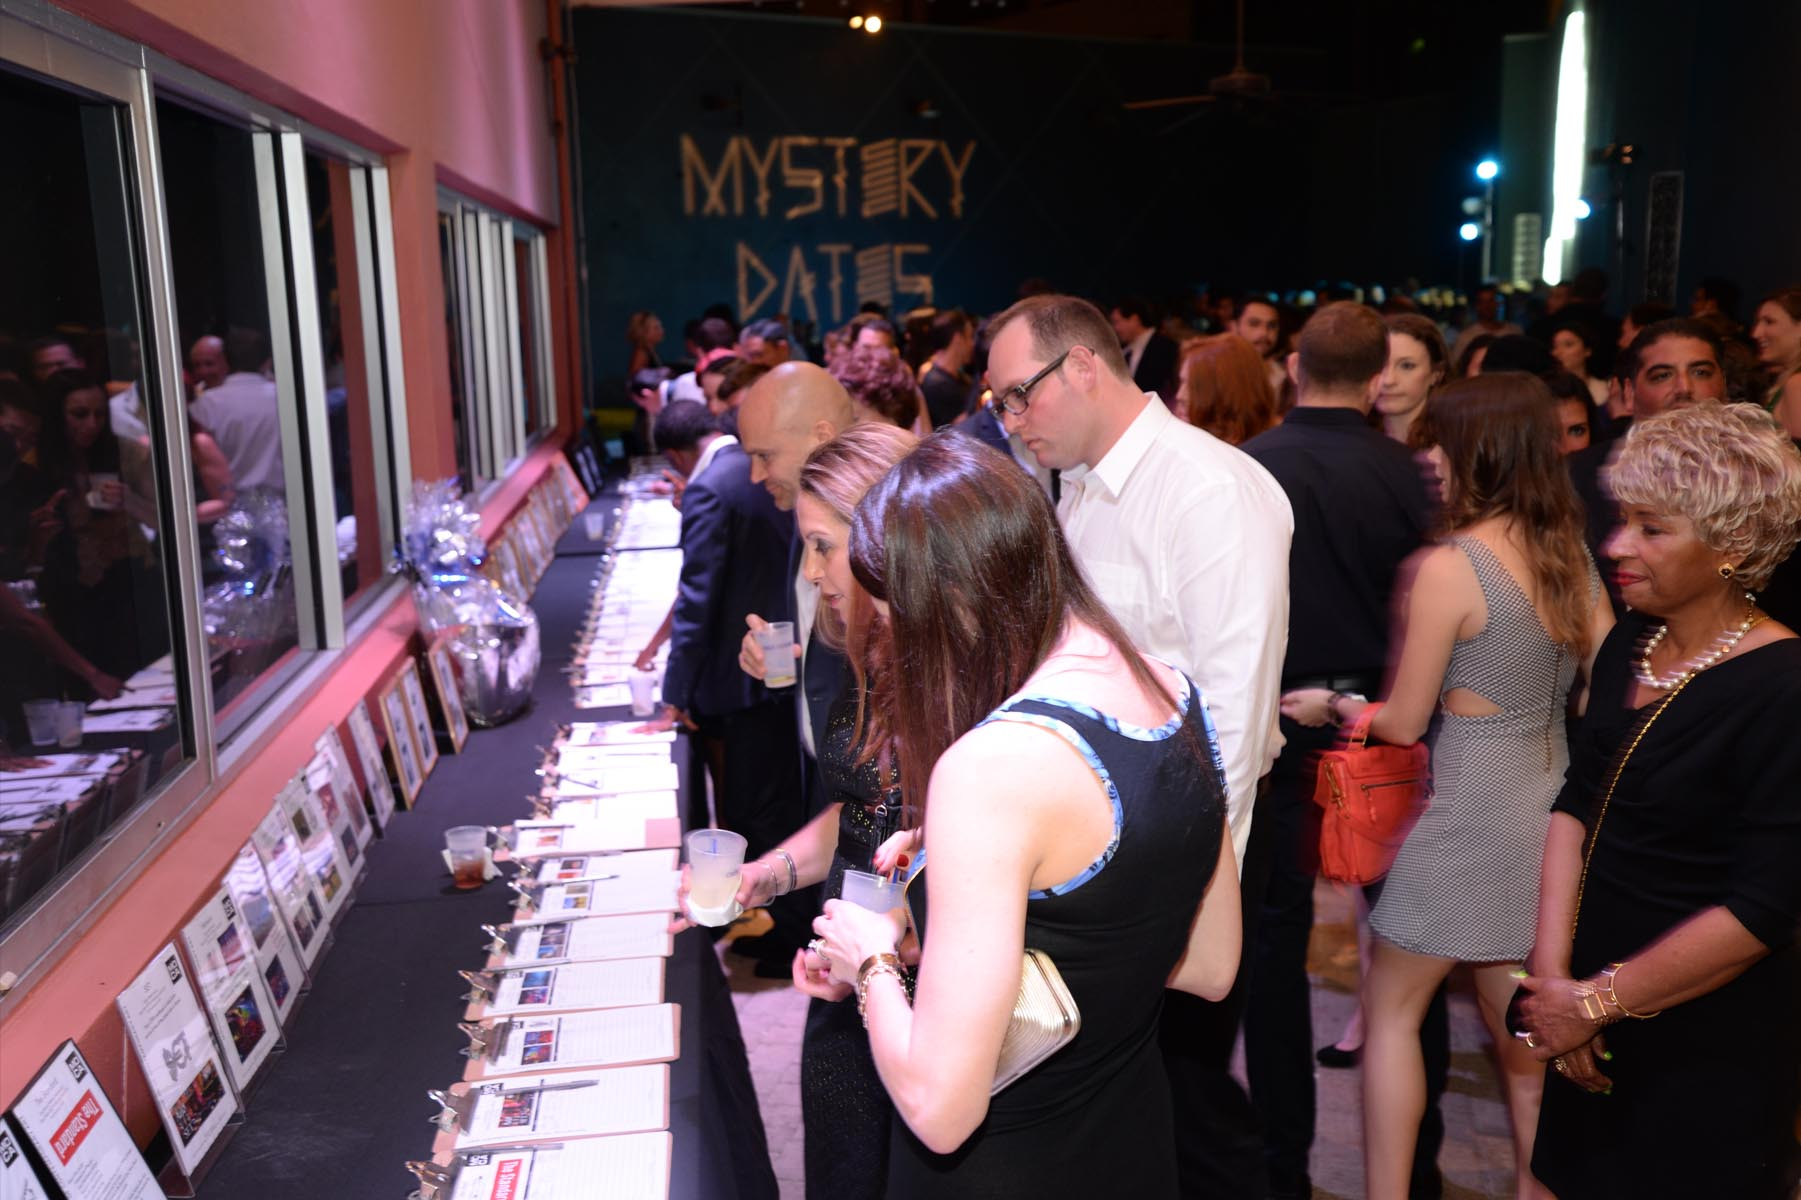 PHOTOS – Mystery Dates 2014